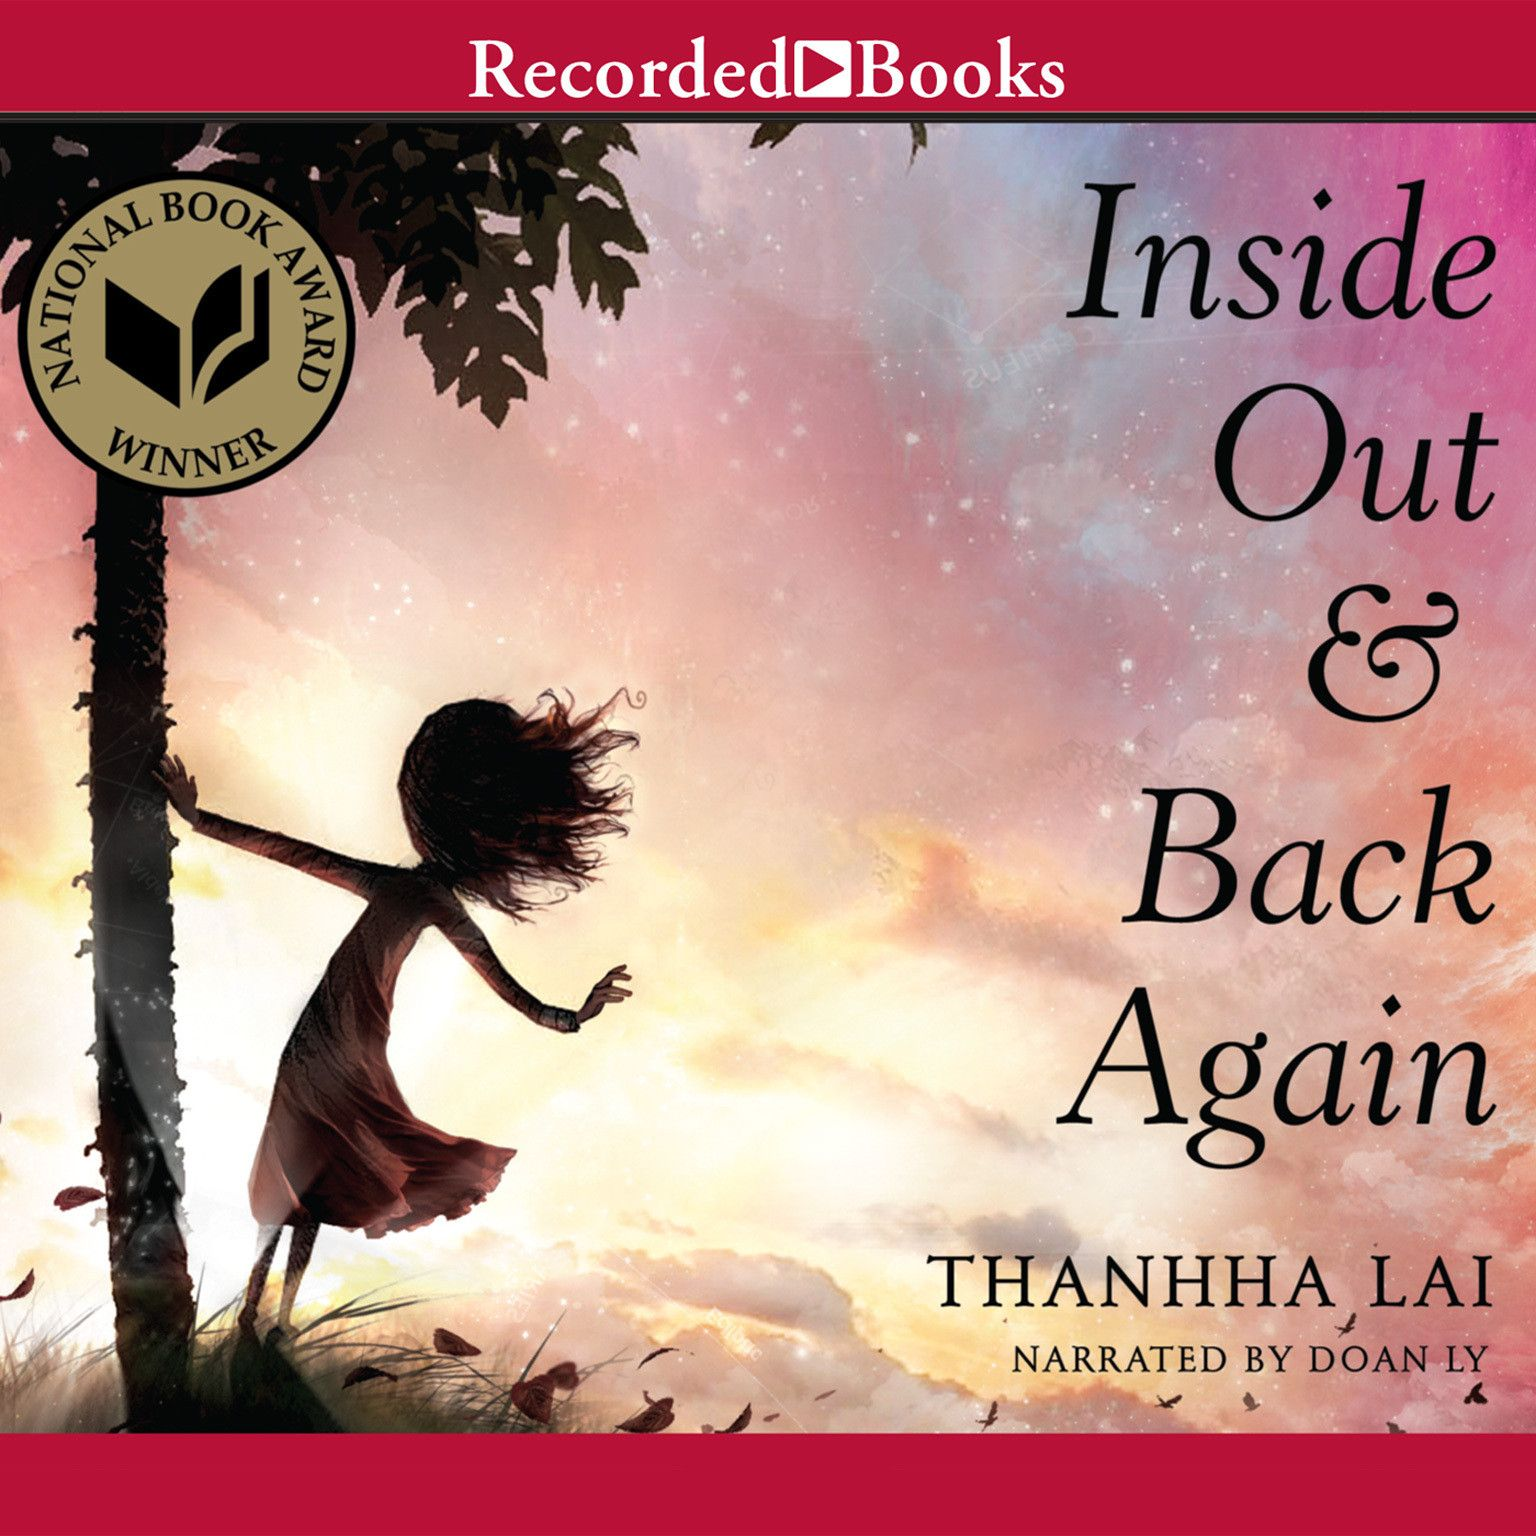 Inside Out & Back Again By Thanhha Lai Is A Beautiful